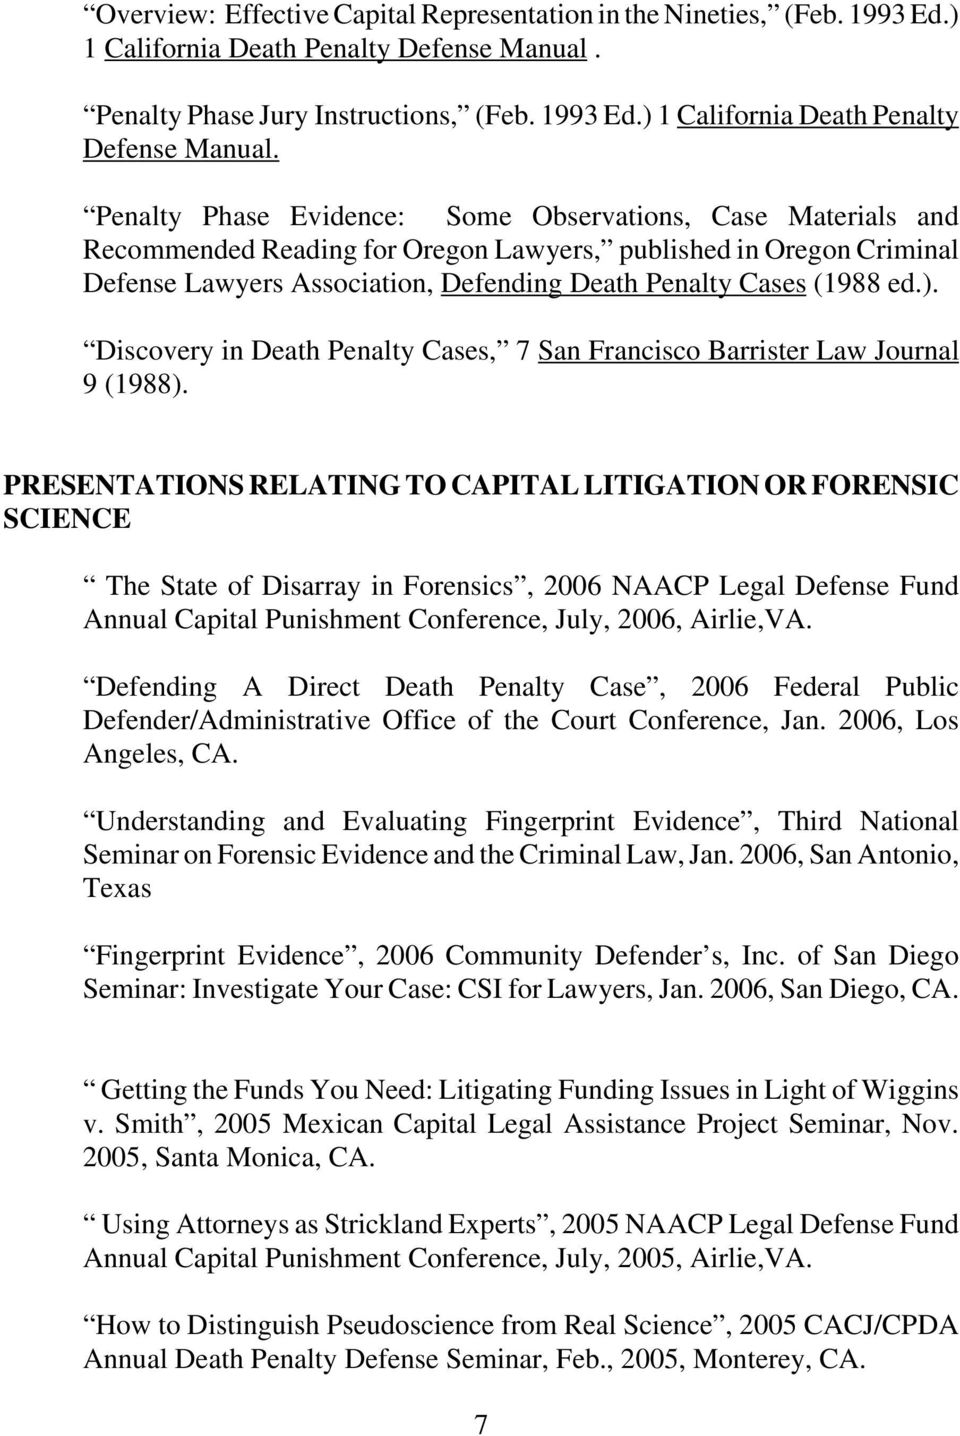 Penalty Phase Evidence: Some Observations, Case Materials and Recommended Reading for Oregon Lawyers, published in Oregon Criminal Defense Lawyers Association, Defending Death Penalty Cases (1988 ed.